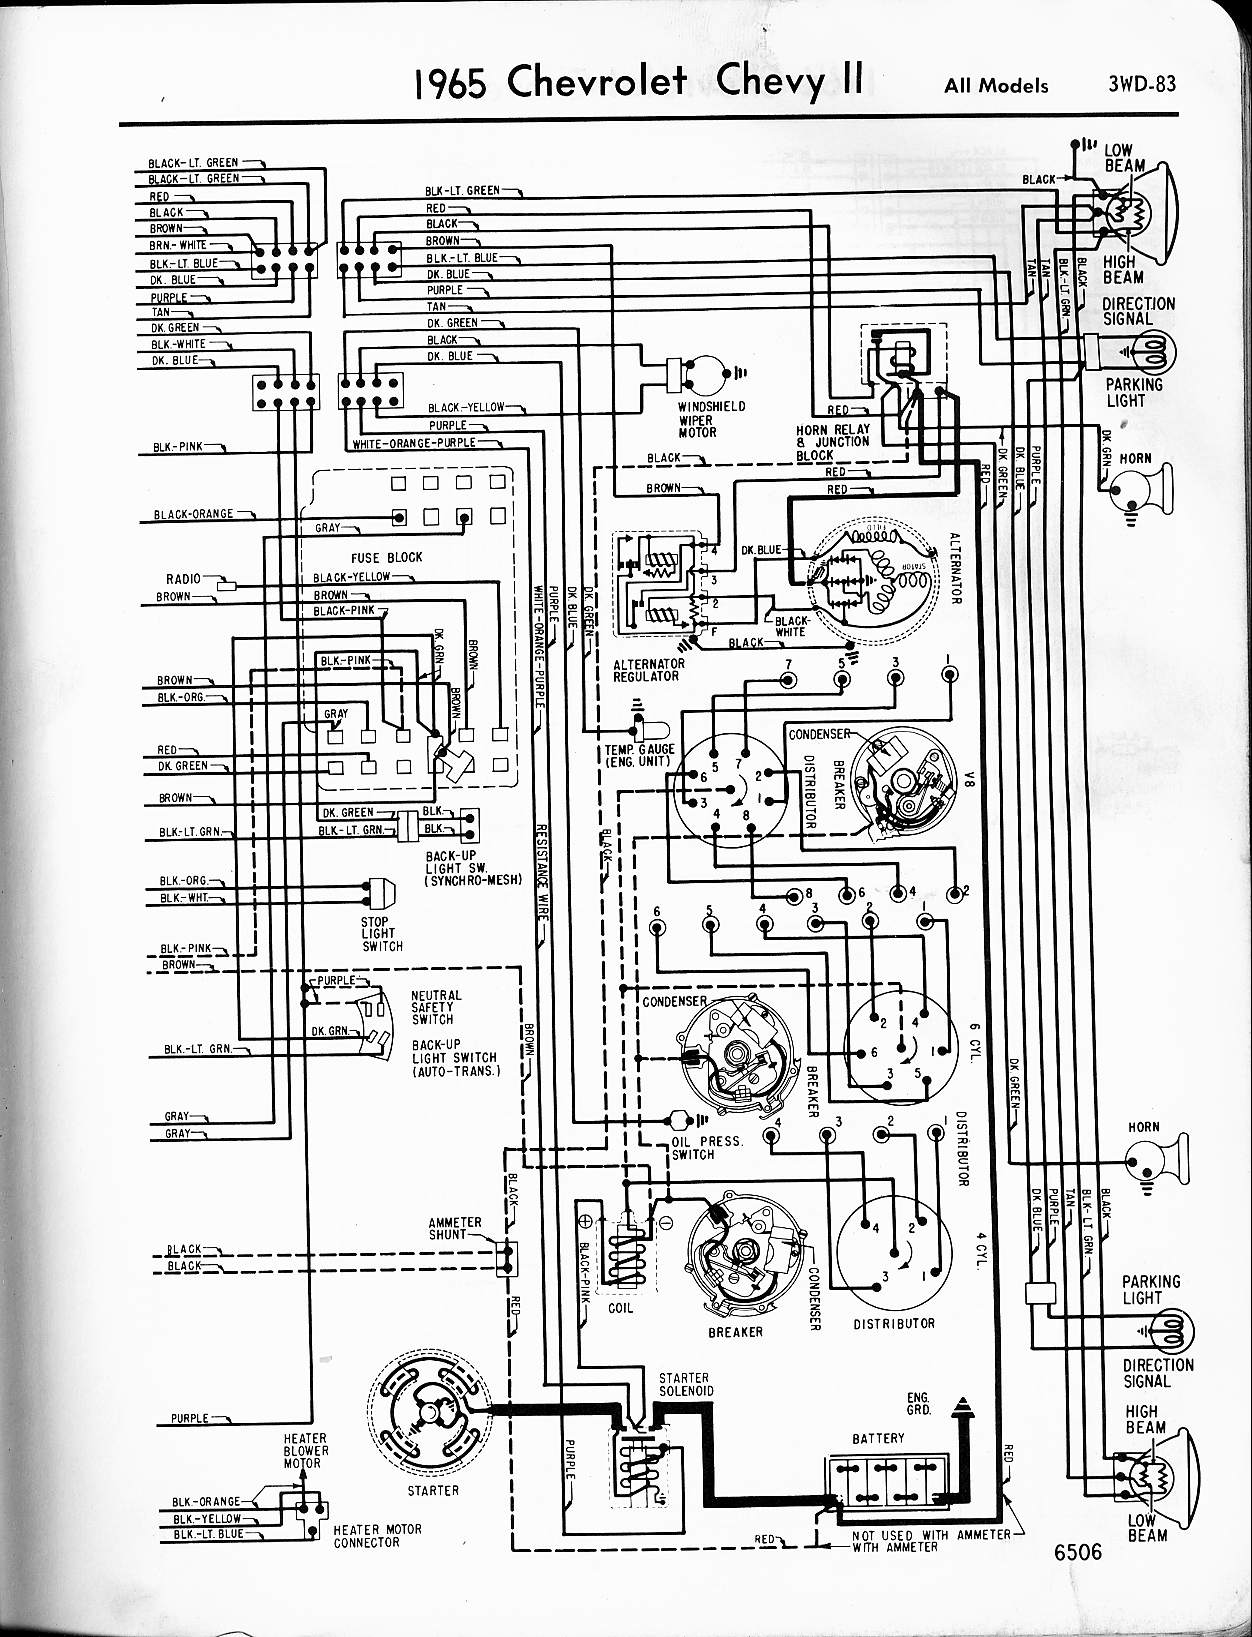 MWireChev65_3WD 083 chevy diagrams 1964 falcon wiring diagram at nearapp.co